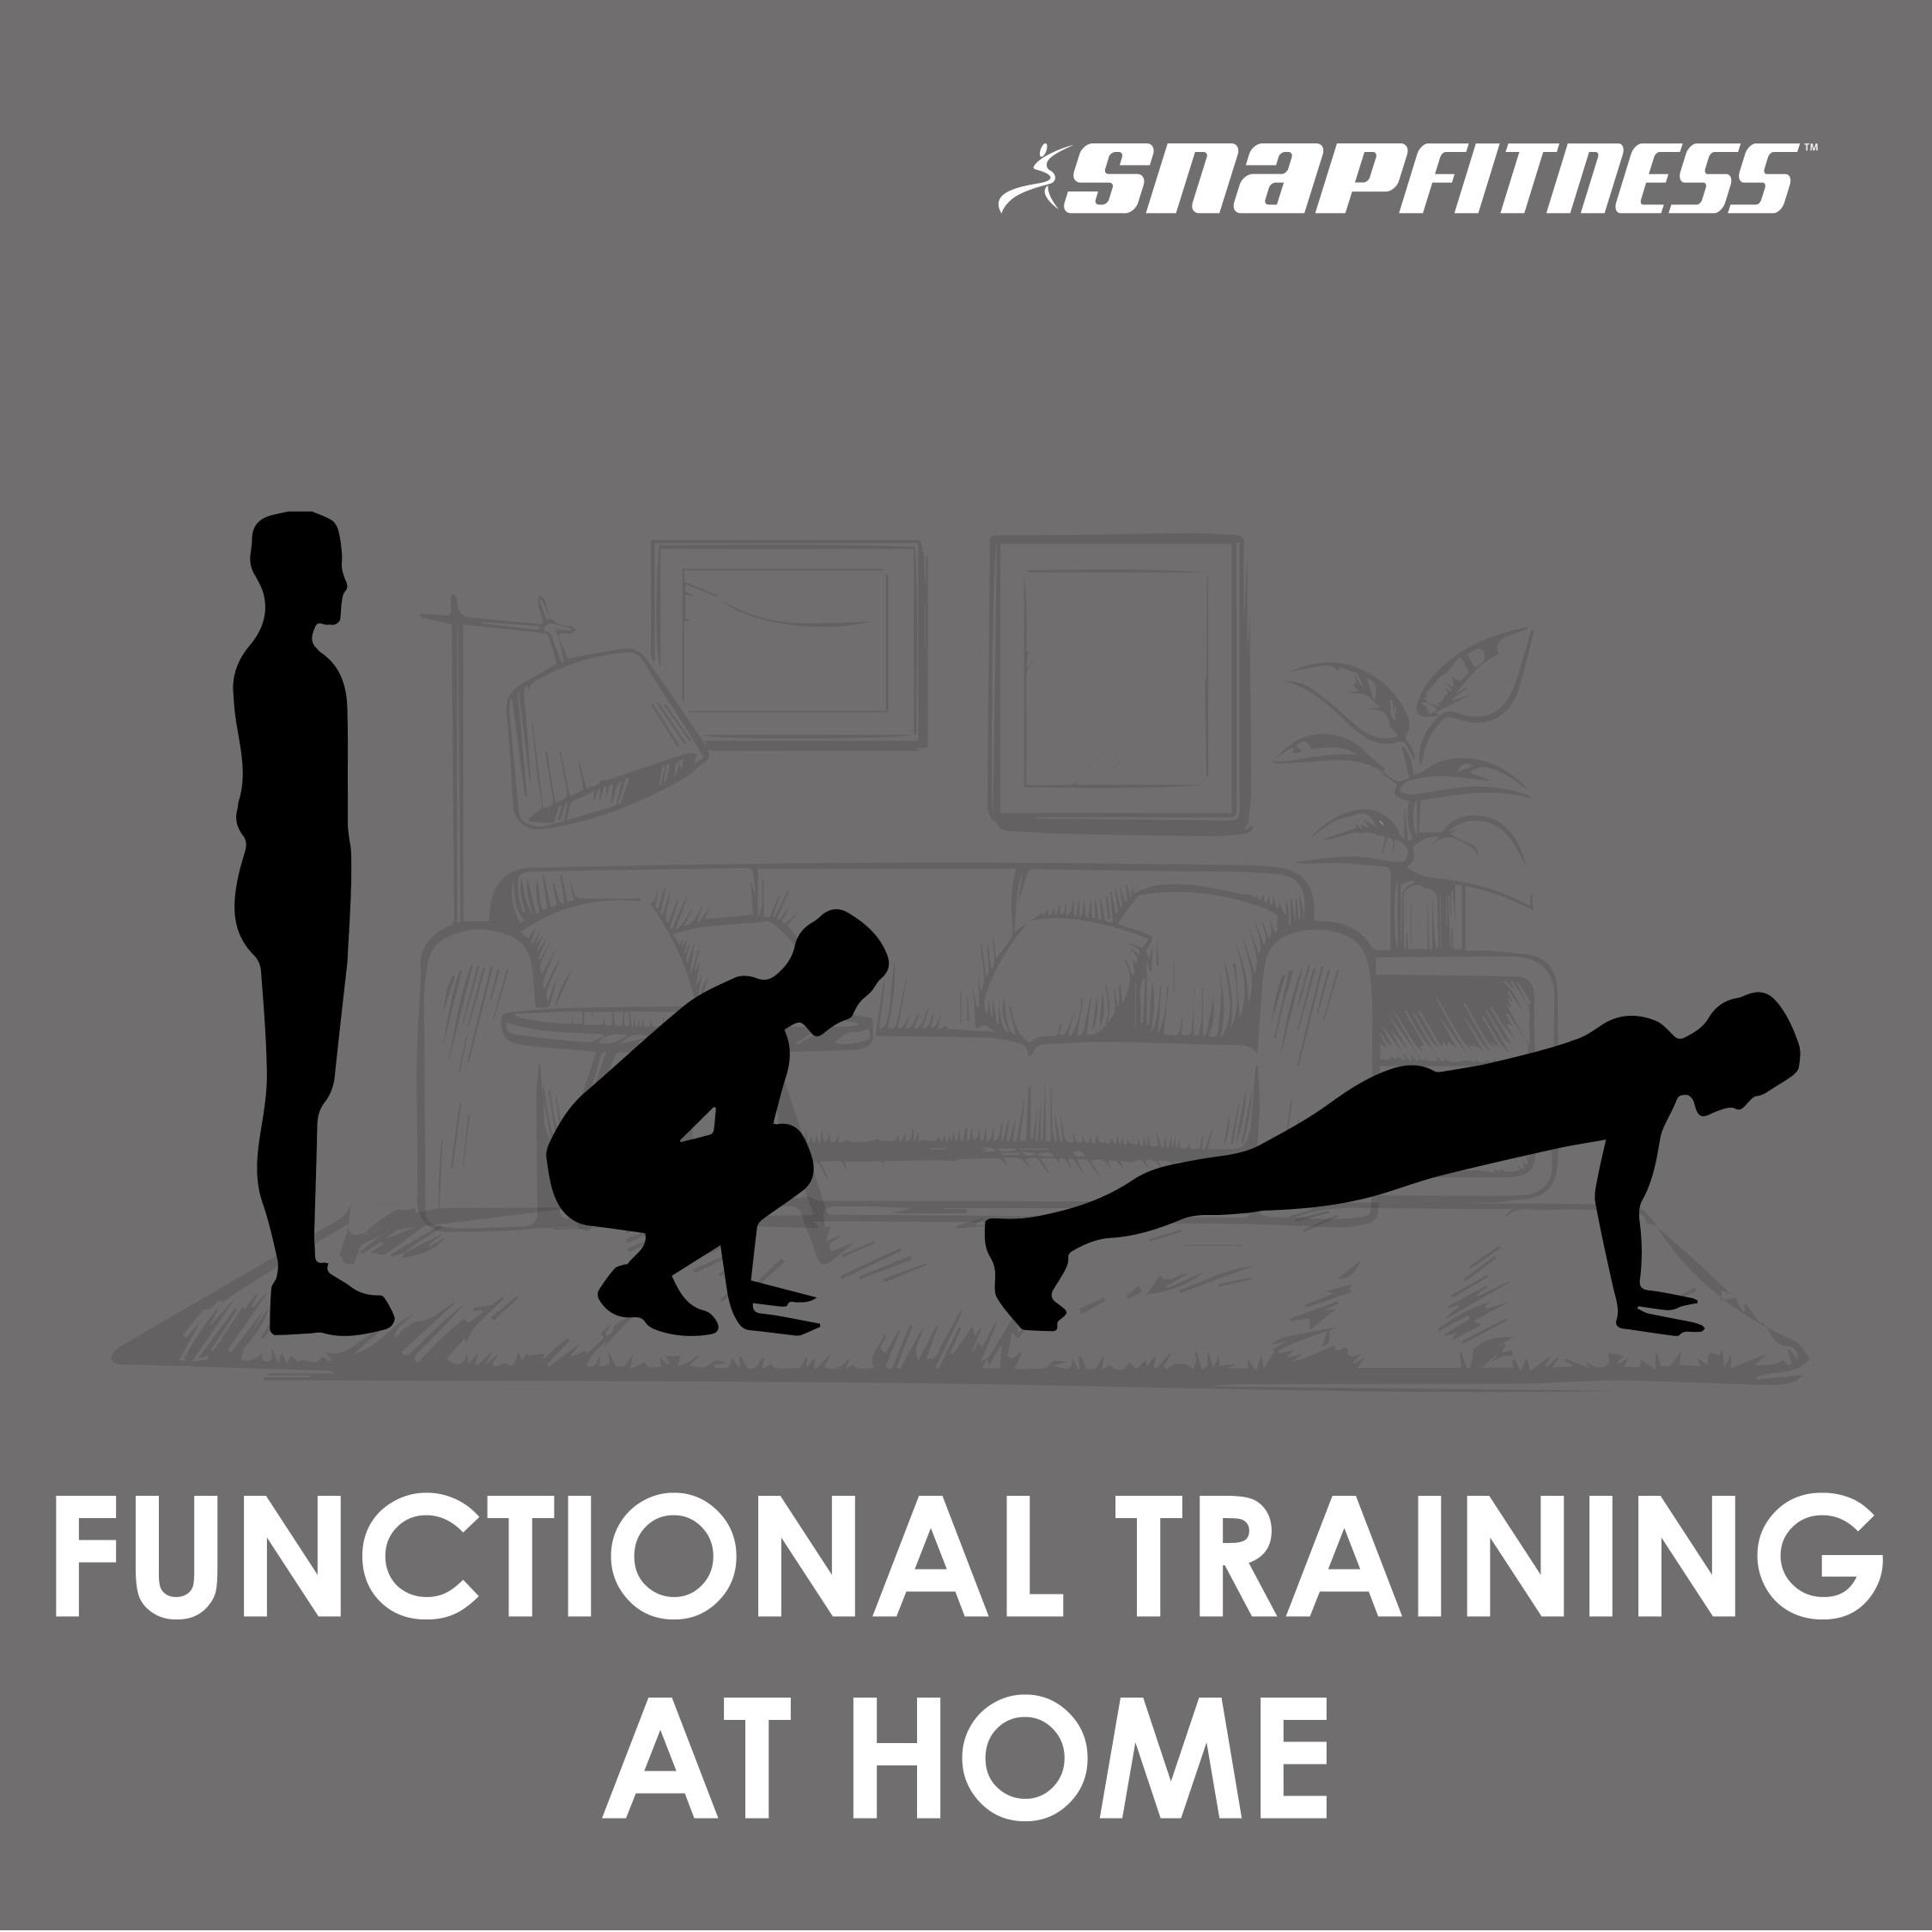 What you need to know about functional training at home